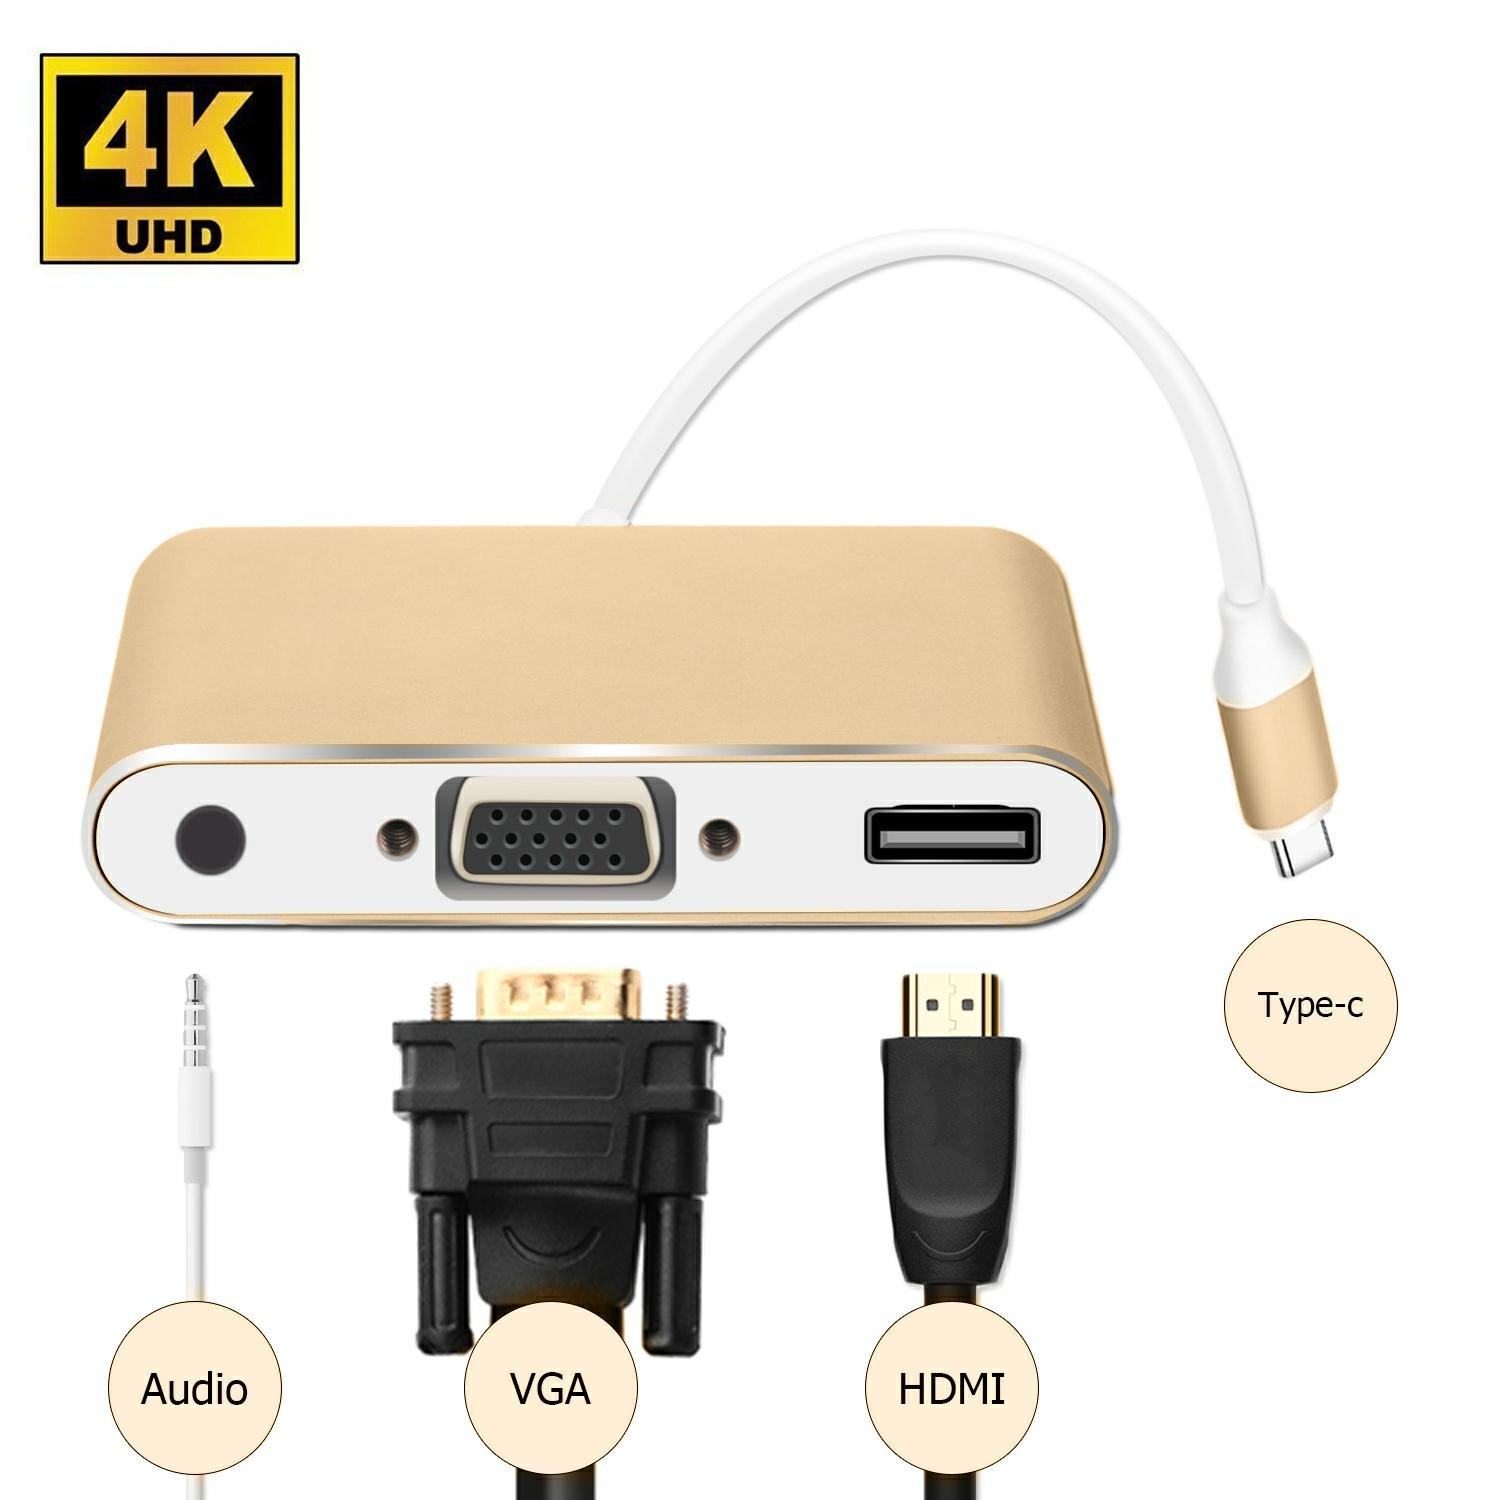 KAKAXI USB 3.1 Type-c Multiport Adapter, Type-c To HDMI /VGA/Audio, Converter Cable Charging Port Adapter Cable with Large Projection for MacBook/Chromebook Pixel/Dell XPS13/Yoga 900(Type-c)